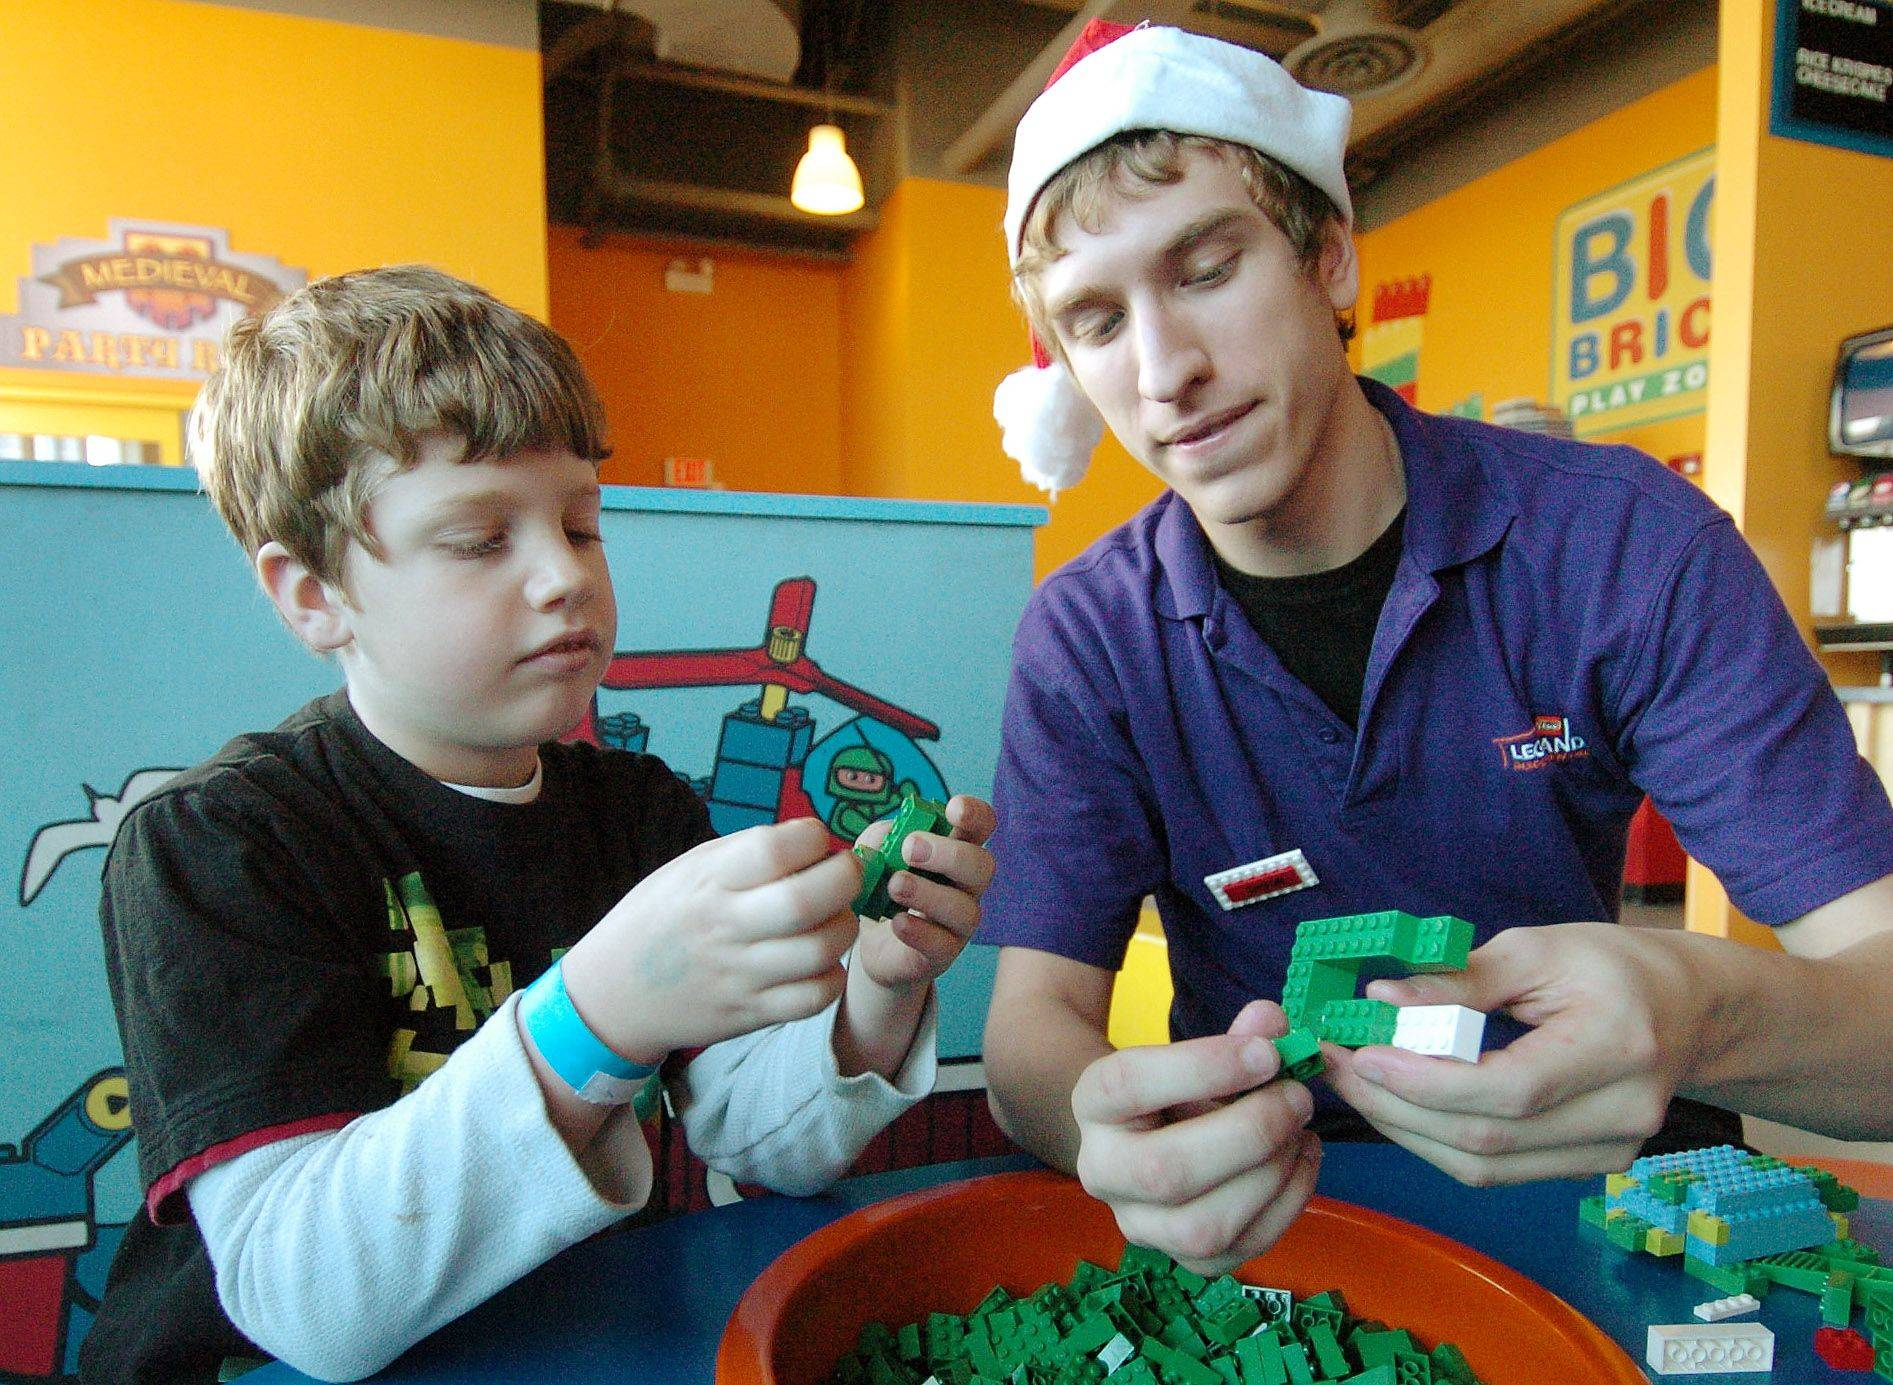 Nine-year-old Jacob Roscizewski of Franklin, Wisconsin builds Christmas ornaments out of LEGOs with employee Chris Sliga on the first day of Holiday Workshops at Legoland in the Streets of Woodfield in Schaumburg.